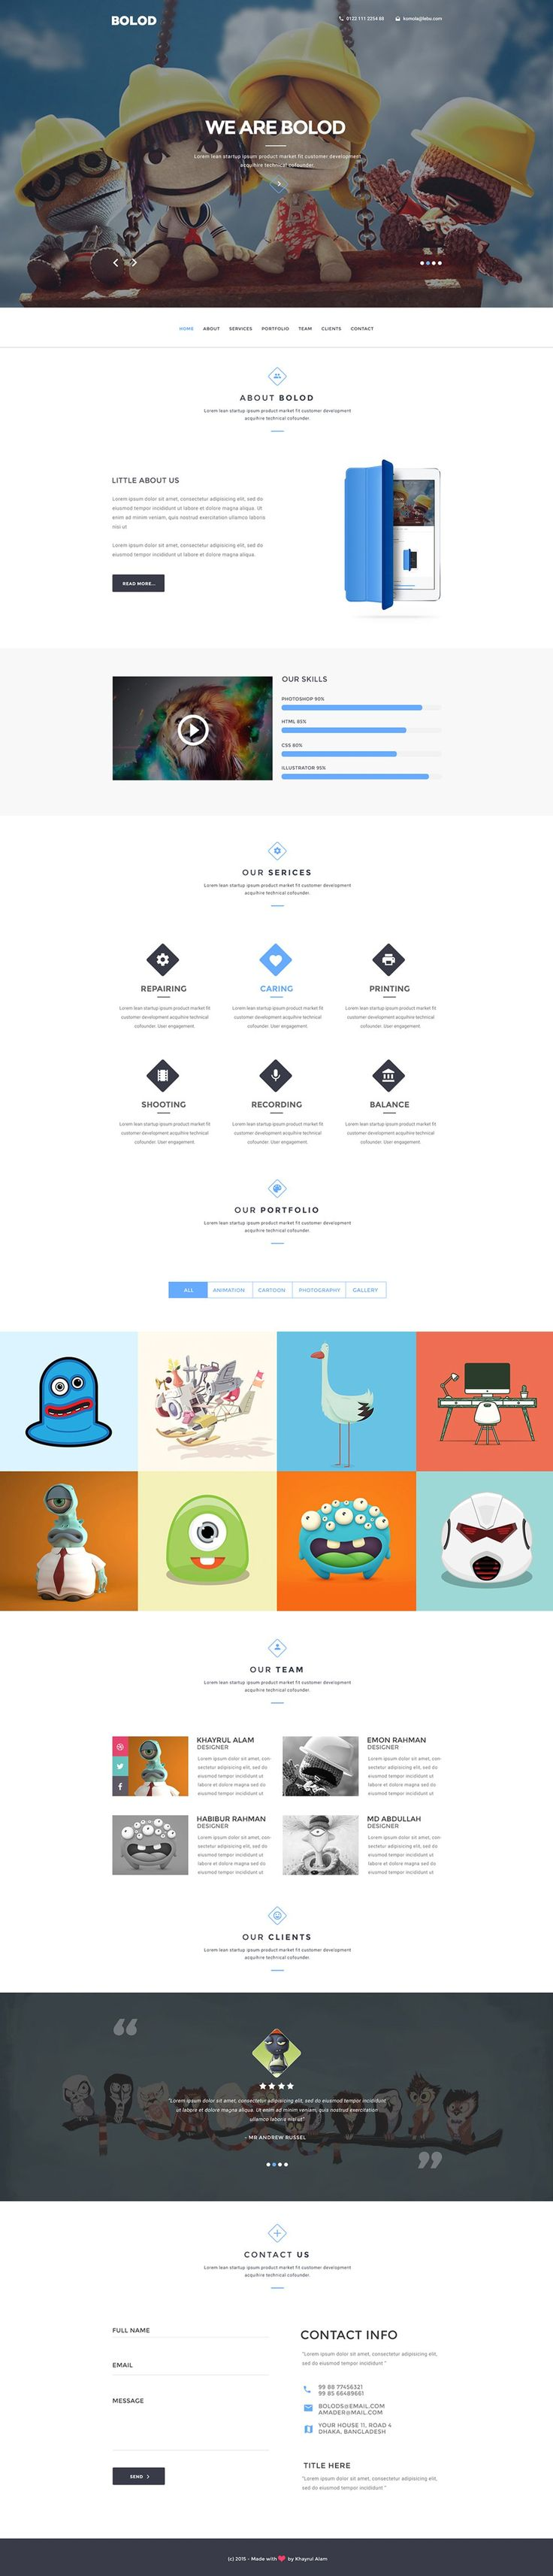 A Great Collection Of Best Single Page Website Templates Psd From Professional Designers Worldwide Feel Free To Use Them As You Like